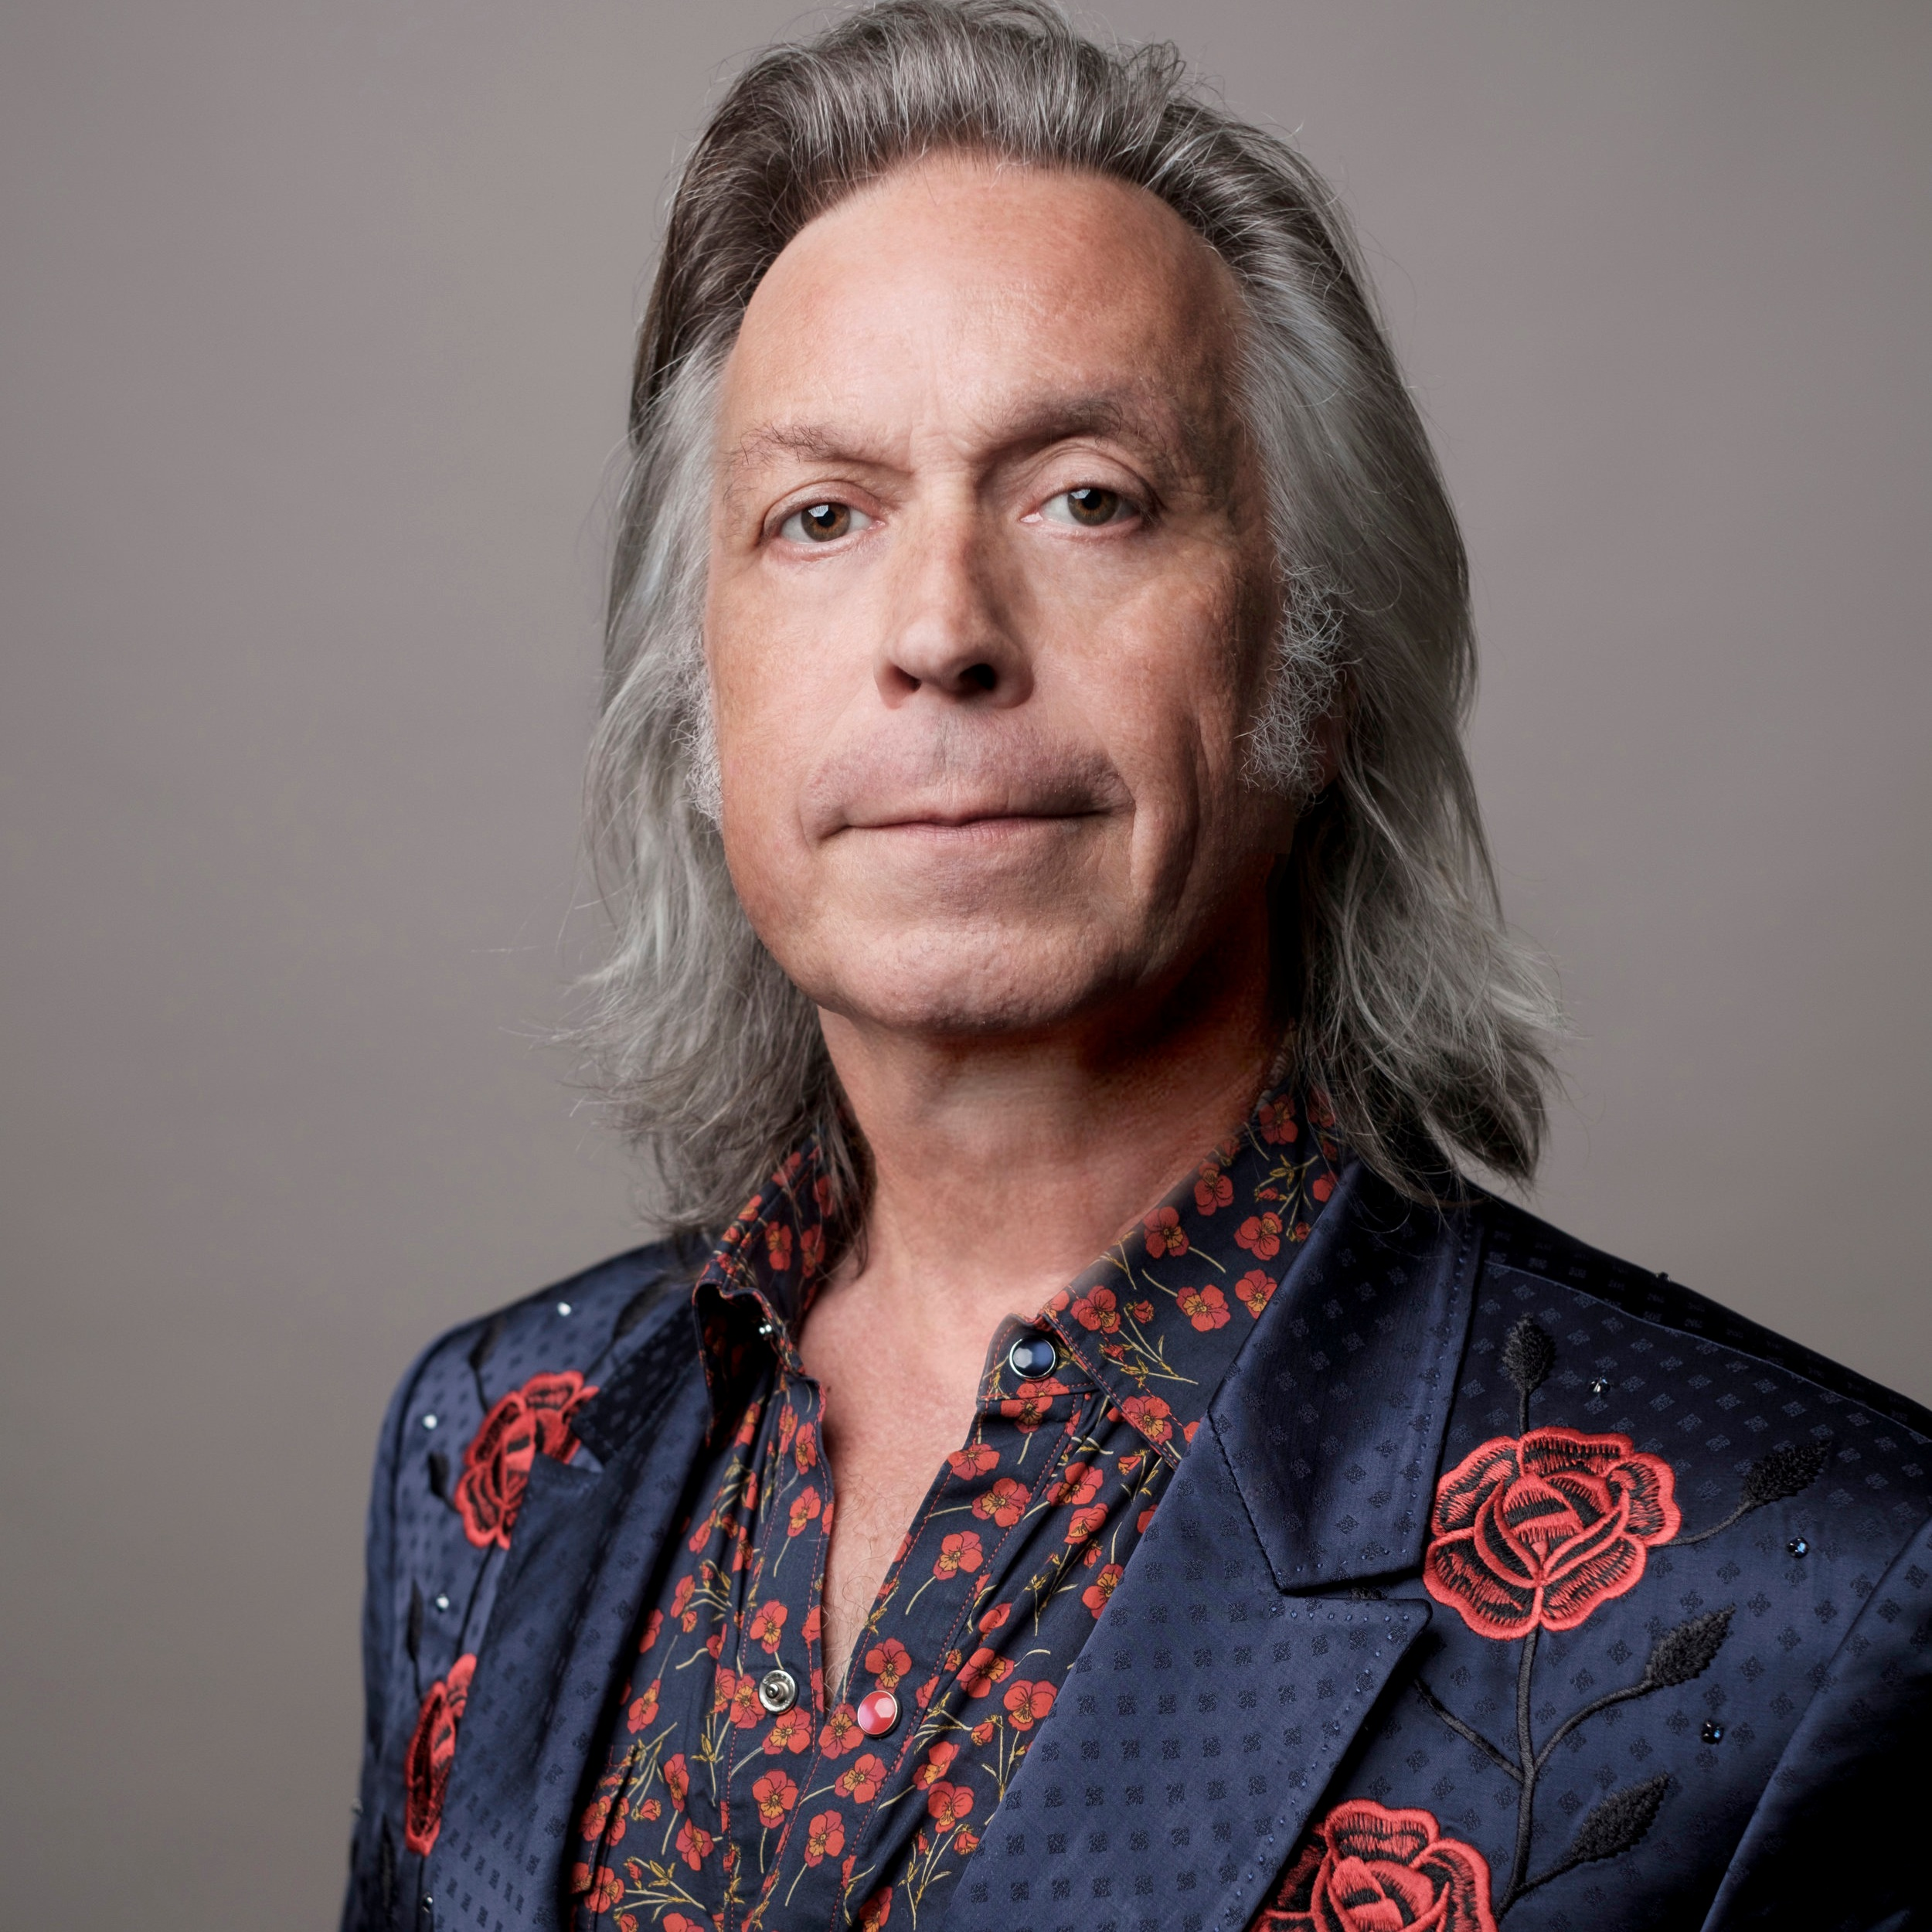 JIM LAUDERDALE - WORKSHOP /// FESTIVALSAT, WAREHOUSE, CREATE TENT STAGE, WORKSHOP WRITERS ROUND, 6 PMSAT, WAREHOUSE, LOUISIANA ENTERTAINMENT MAIN STAGE, 8:30 PM